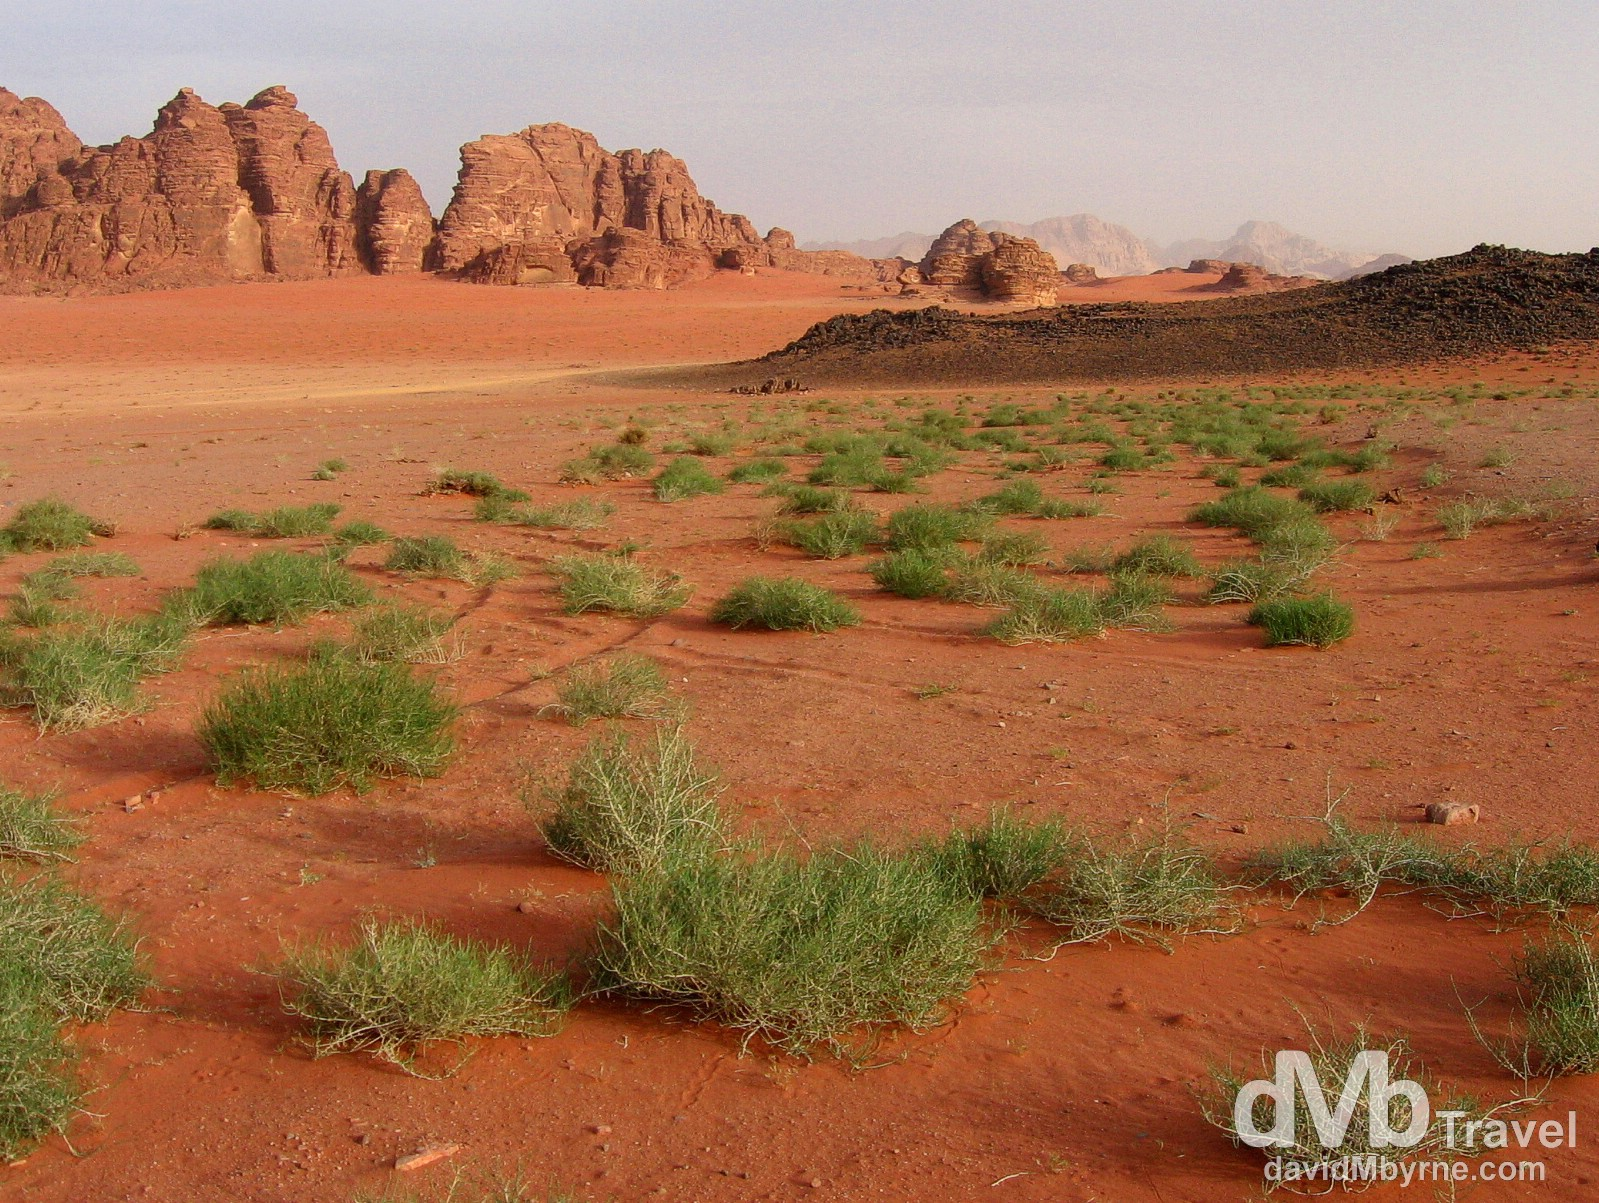 Greenery amongst the red sands of Wadi Rum, Jordan. April 25th 2008.